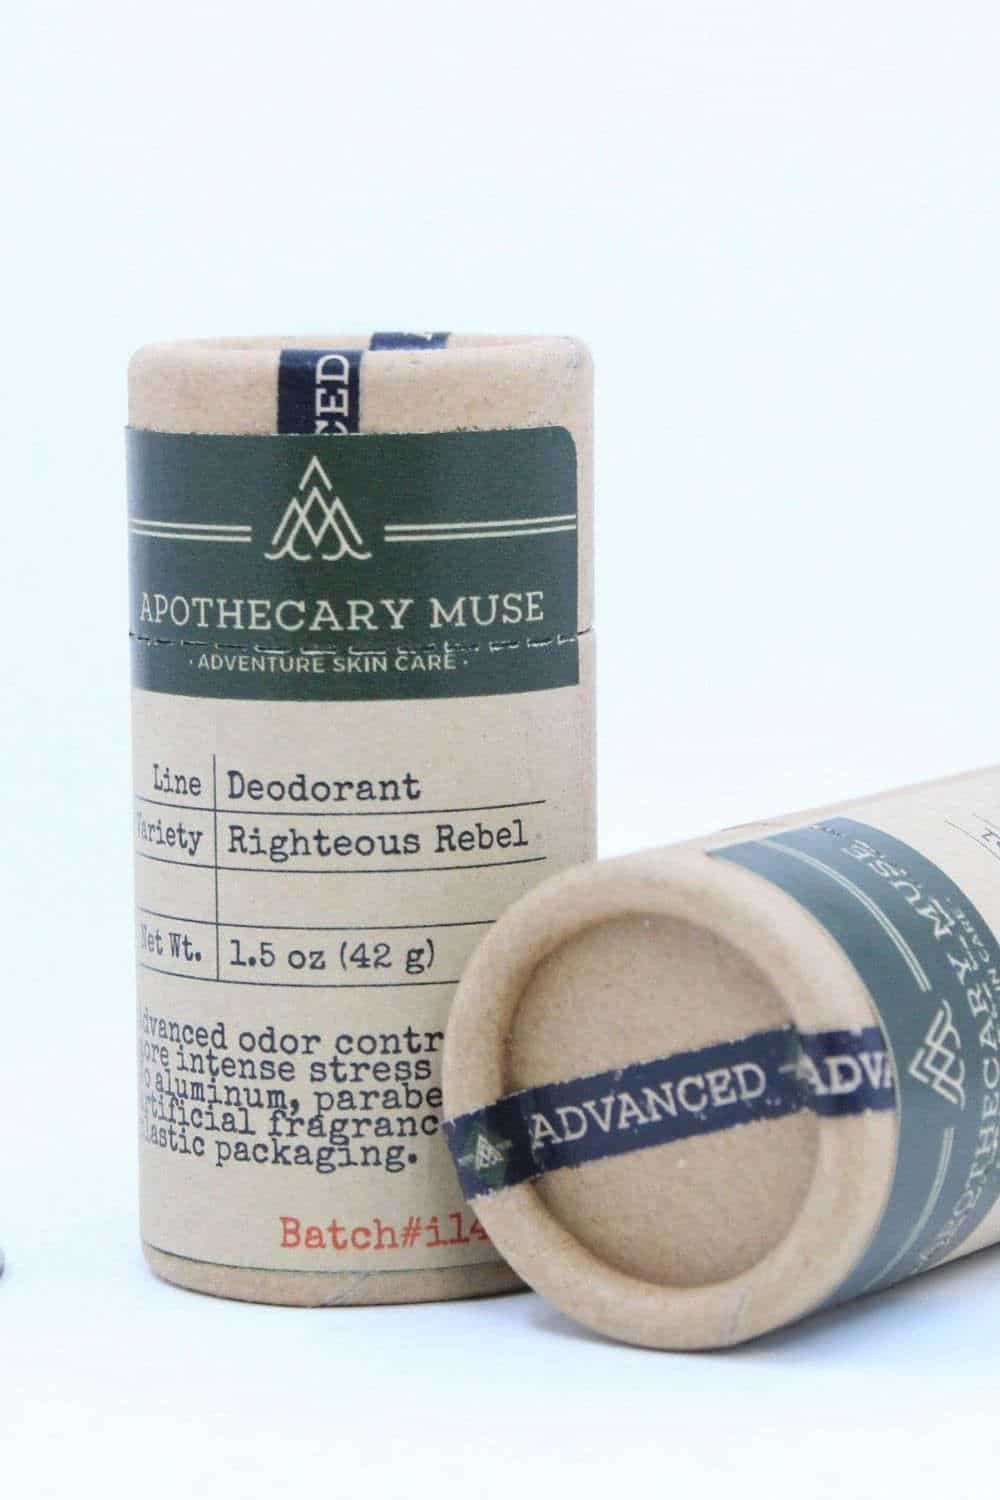 The ethical personal care market has exploded with options in the last few years which is great. The problem though, is trying to find eco friendly deodorants that are effective. So, we've made a list of our favorites that are fit for purpose! Image by Apothecary Muse #ecofriendlydeodorant #sustainablejungle